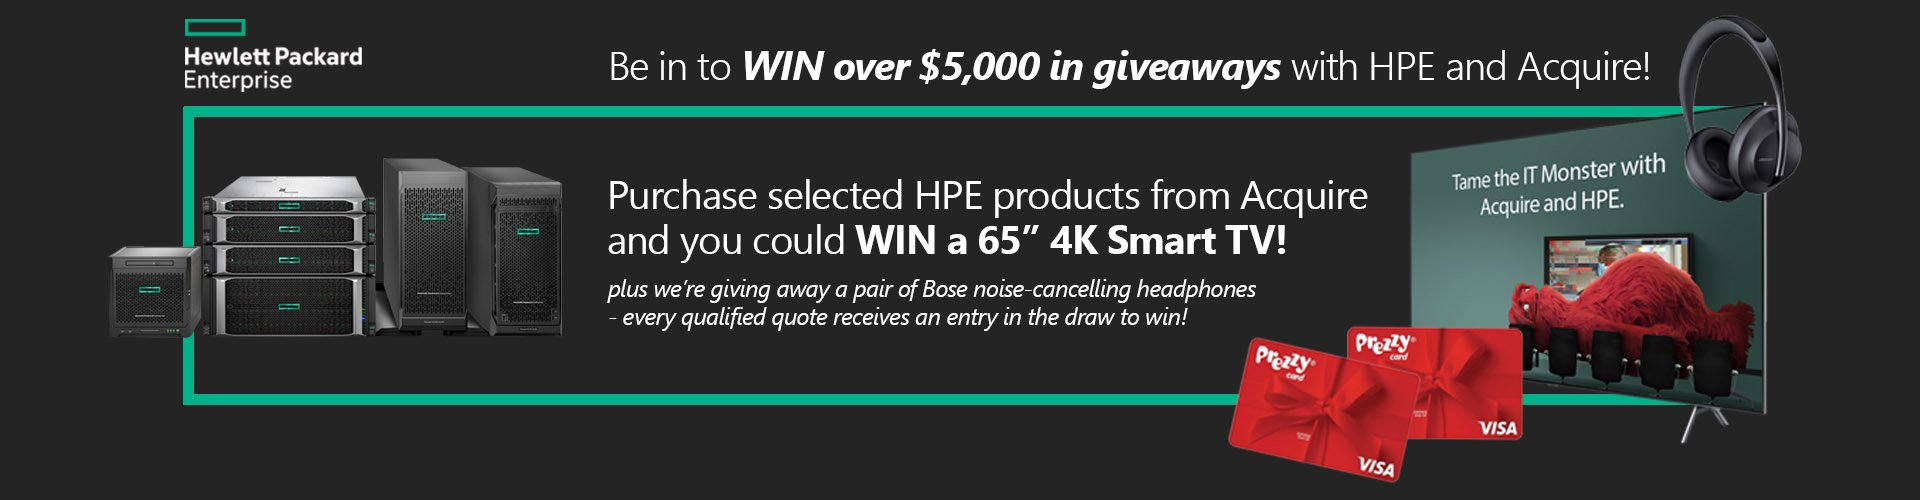 Win with HPE and Acquire